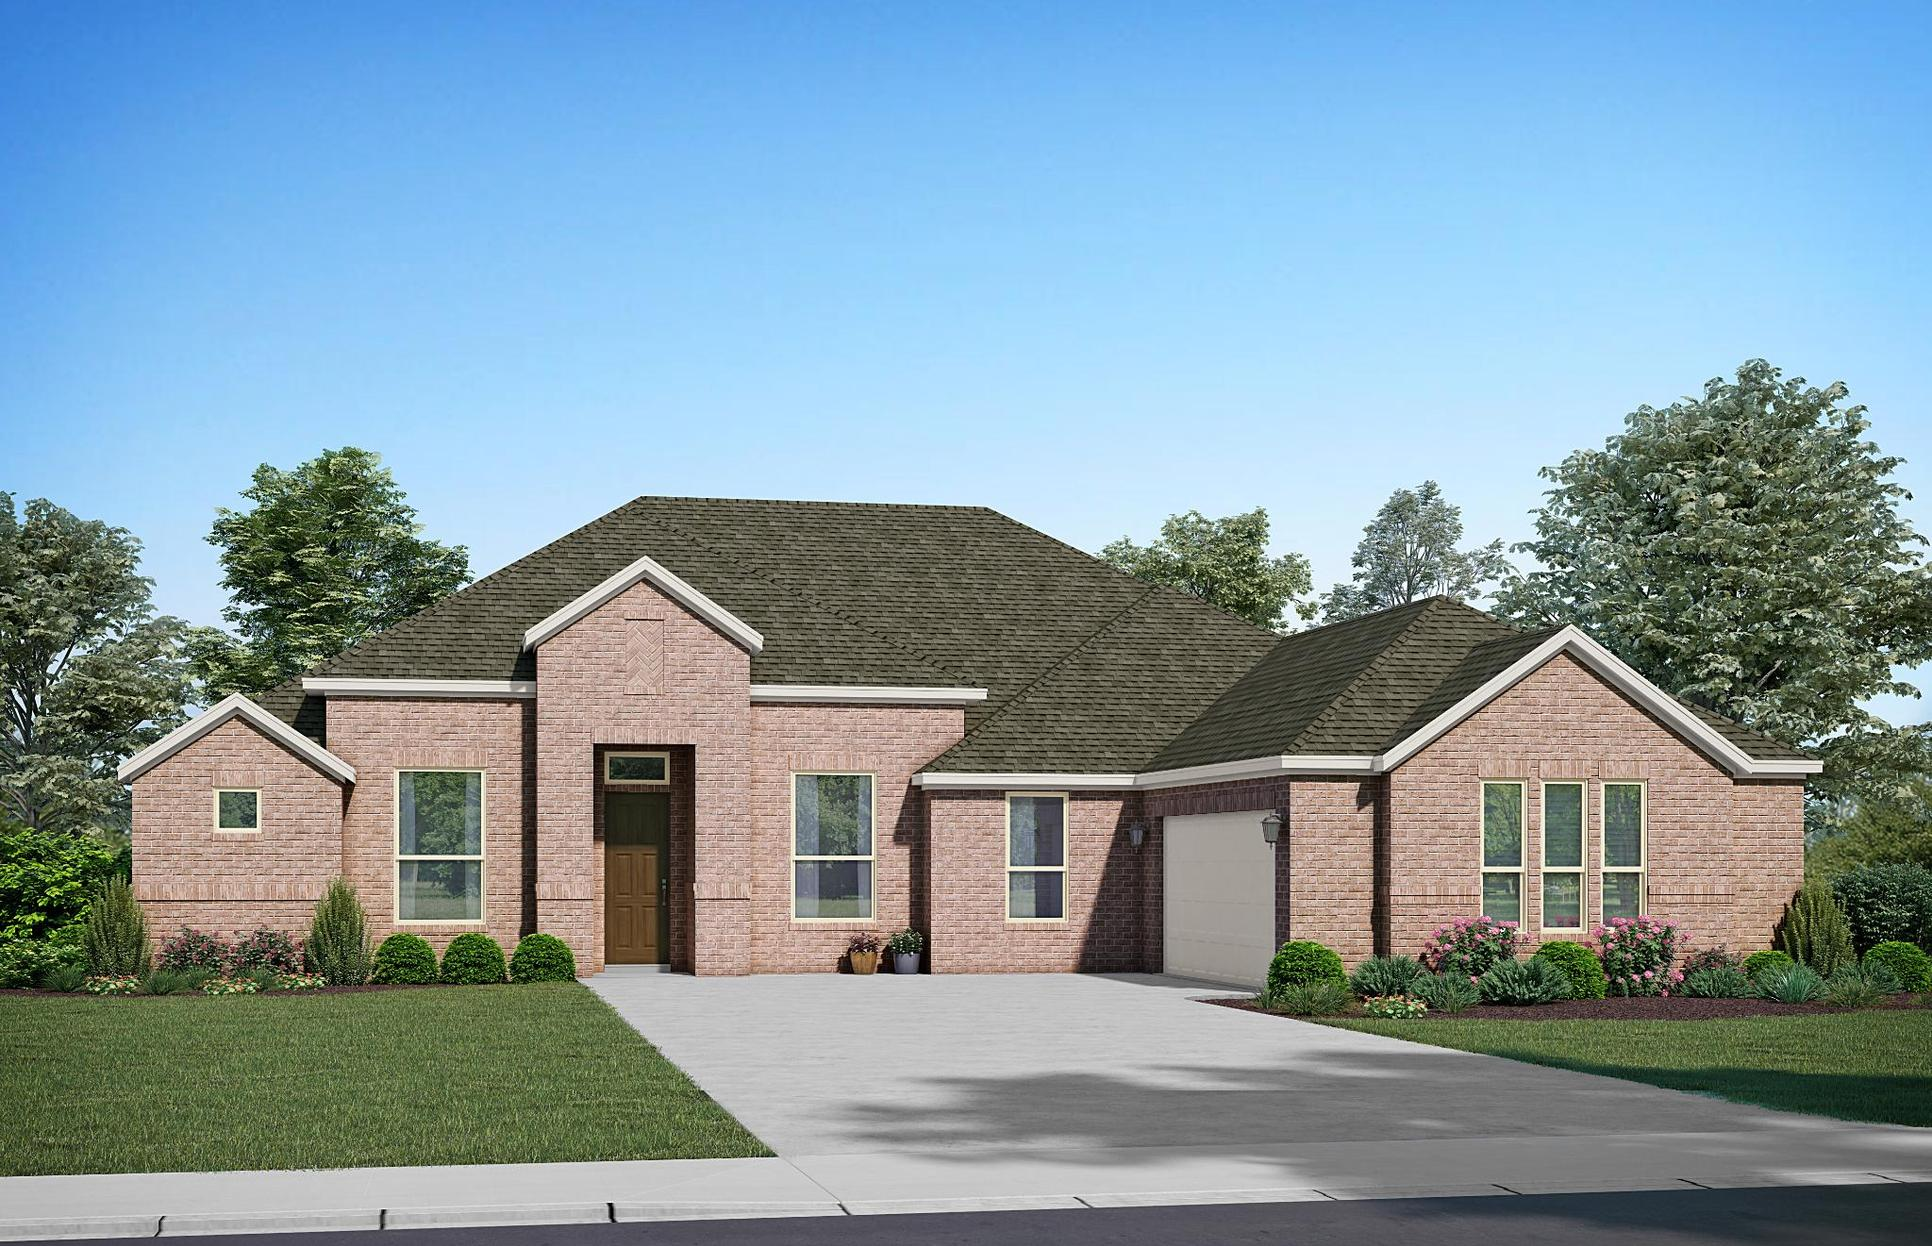 The Chateau - Elevation A. Images are artist renderings and will differ from the actual home built.:Elevation A